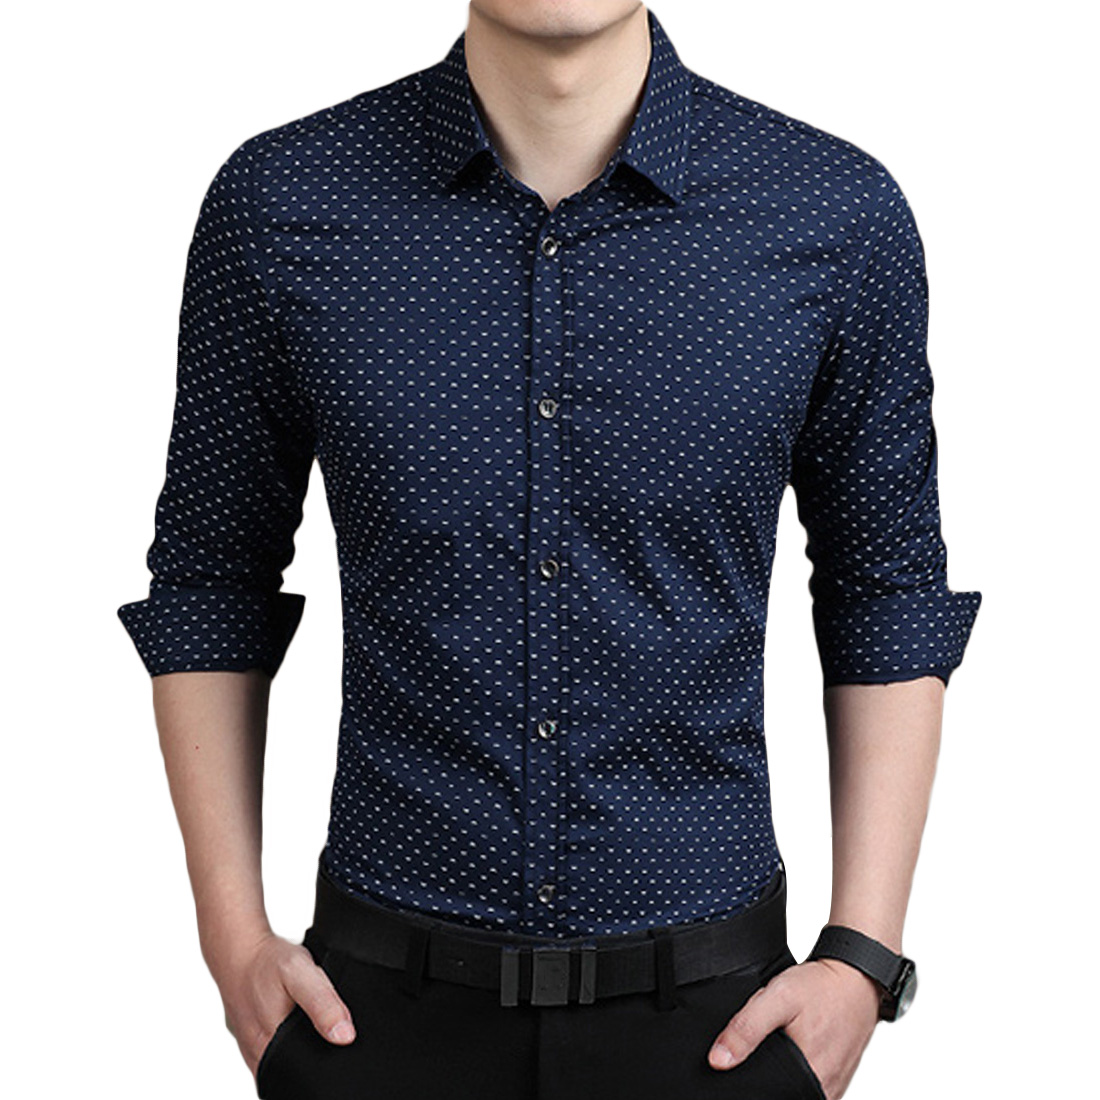 2017 New Spring Casual Shirts Men Long Sleeve Party Tops ...